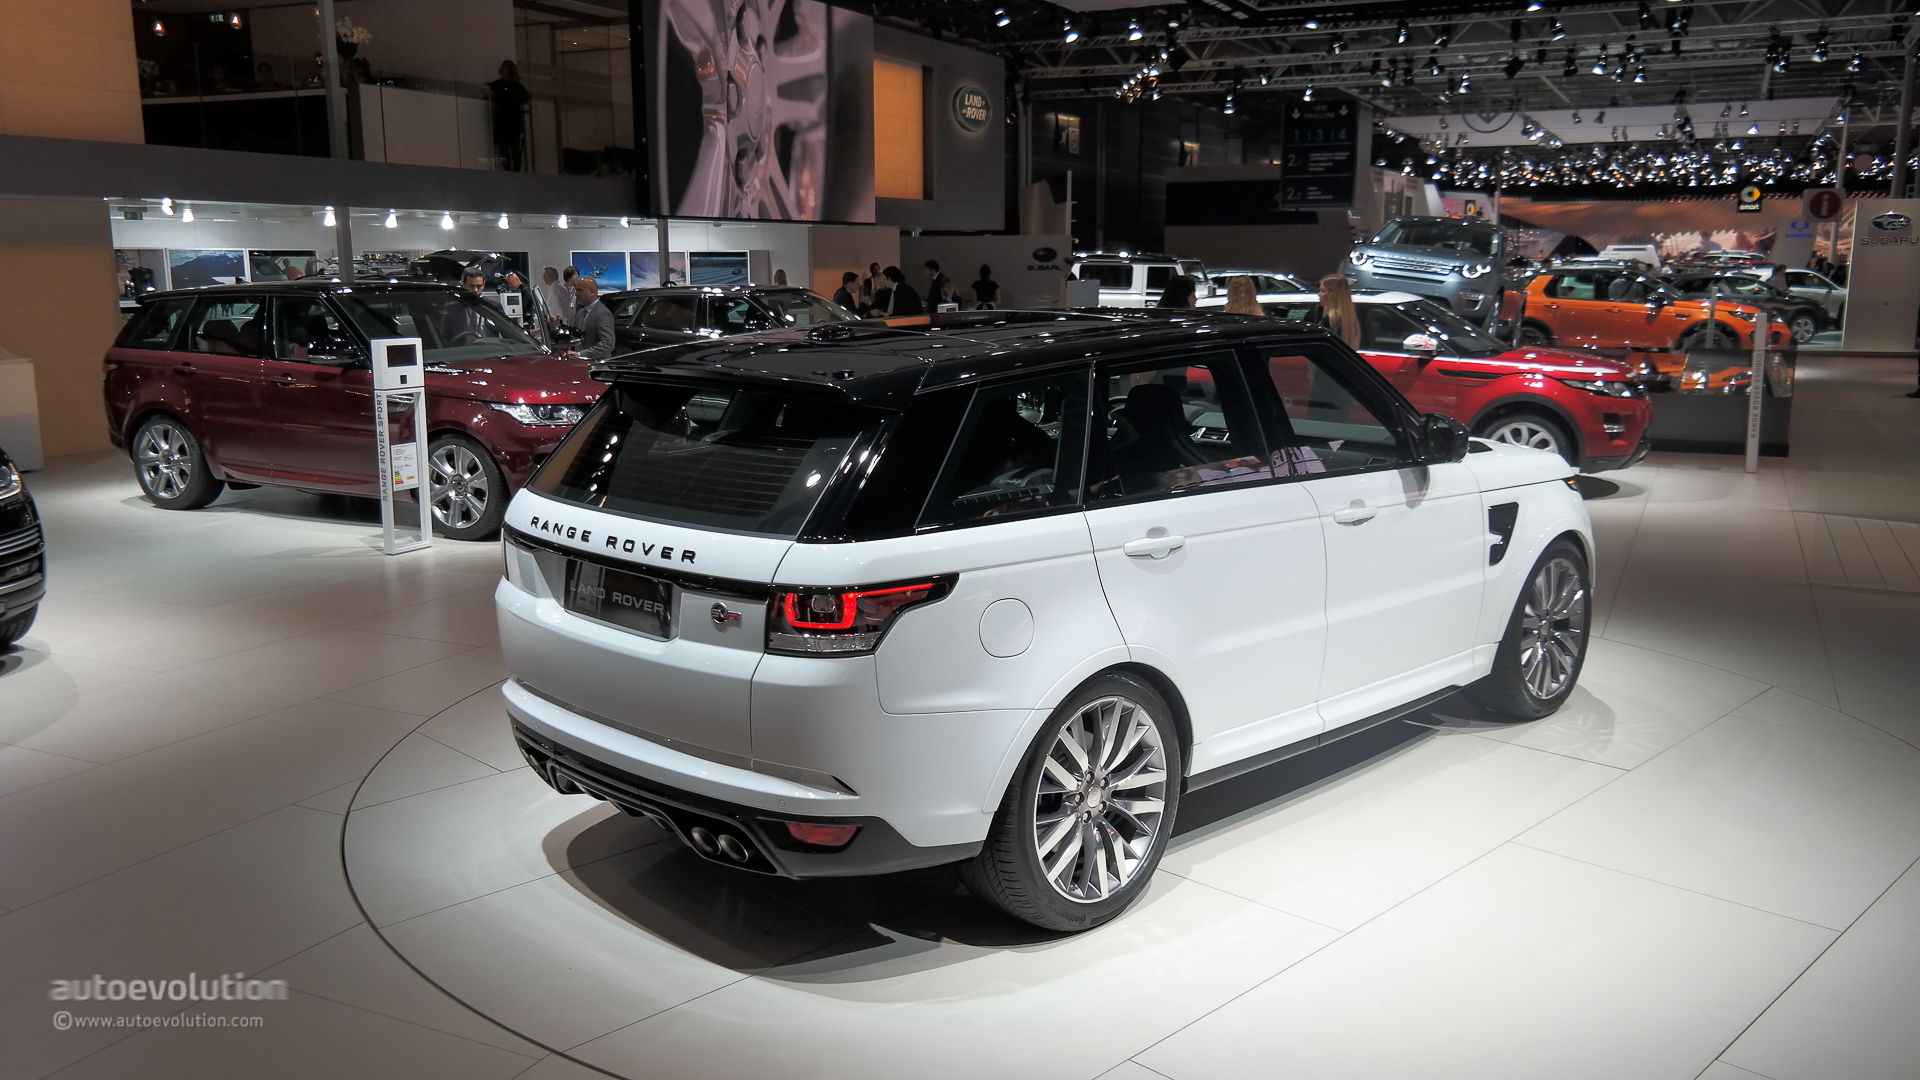 Range Rover Sport Svr Brings Its Supercharged V8 To Paris